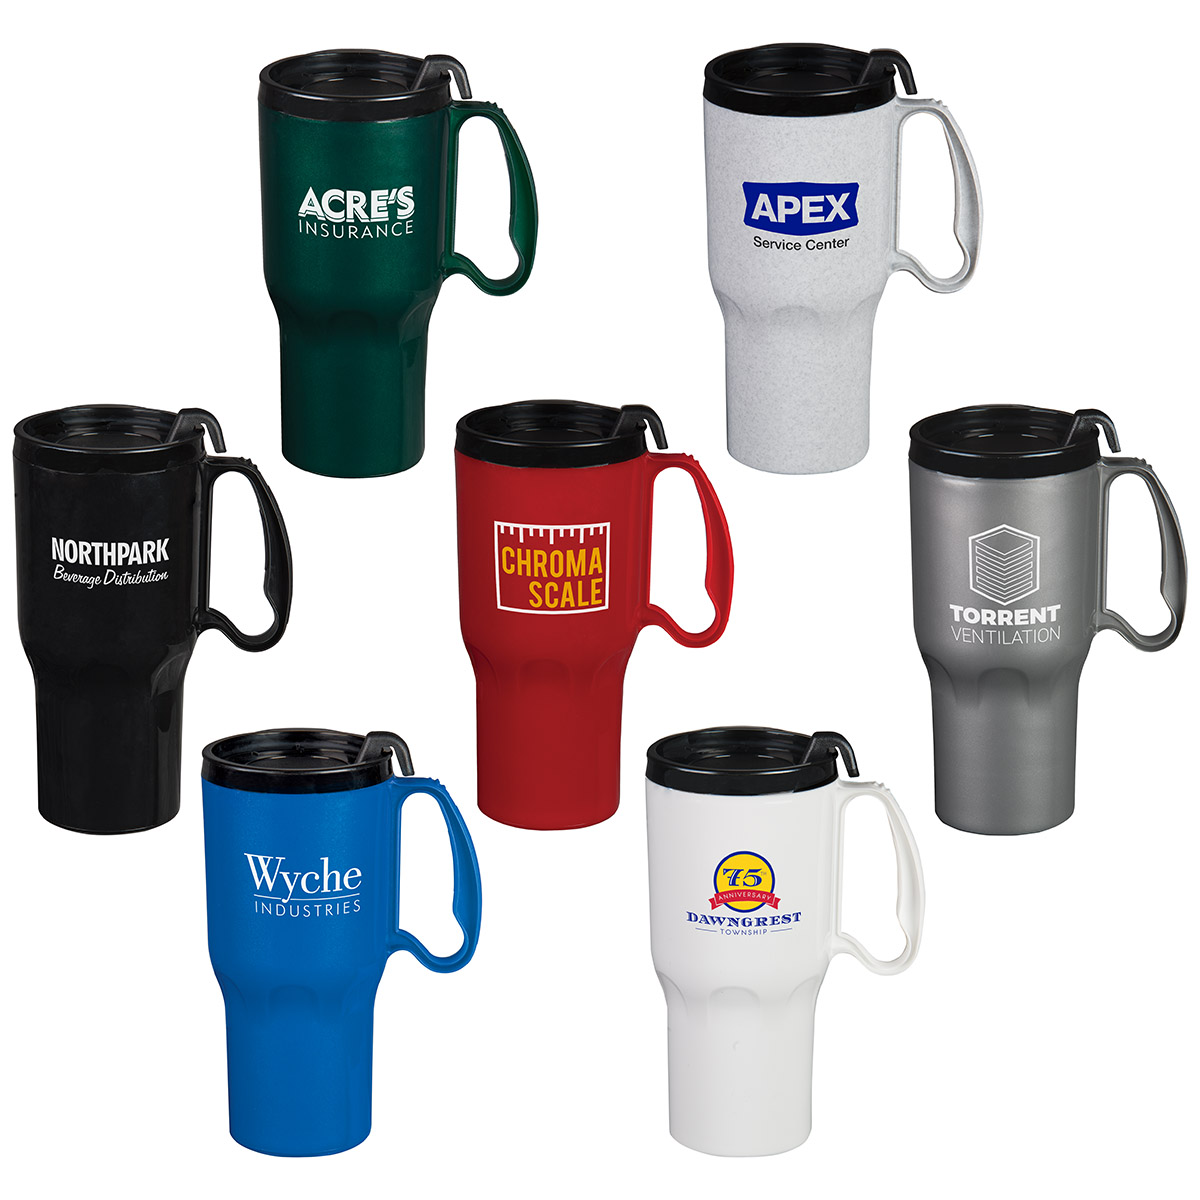 DERBY 21 oz Sports Mug, DWI-DB17, 1 Colour Imprint